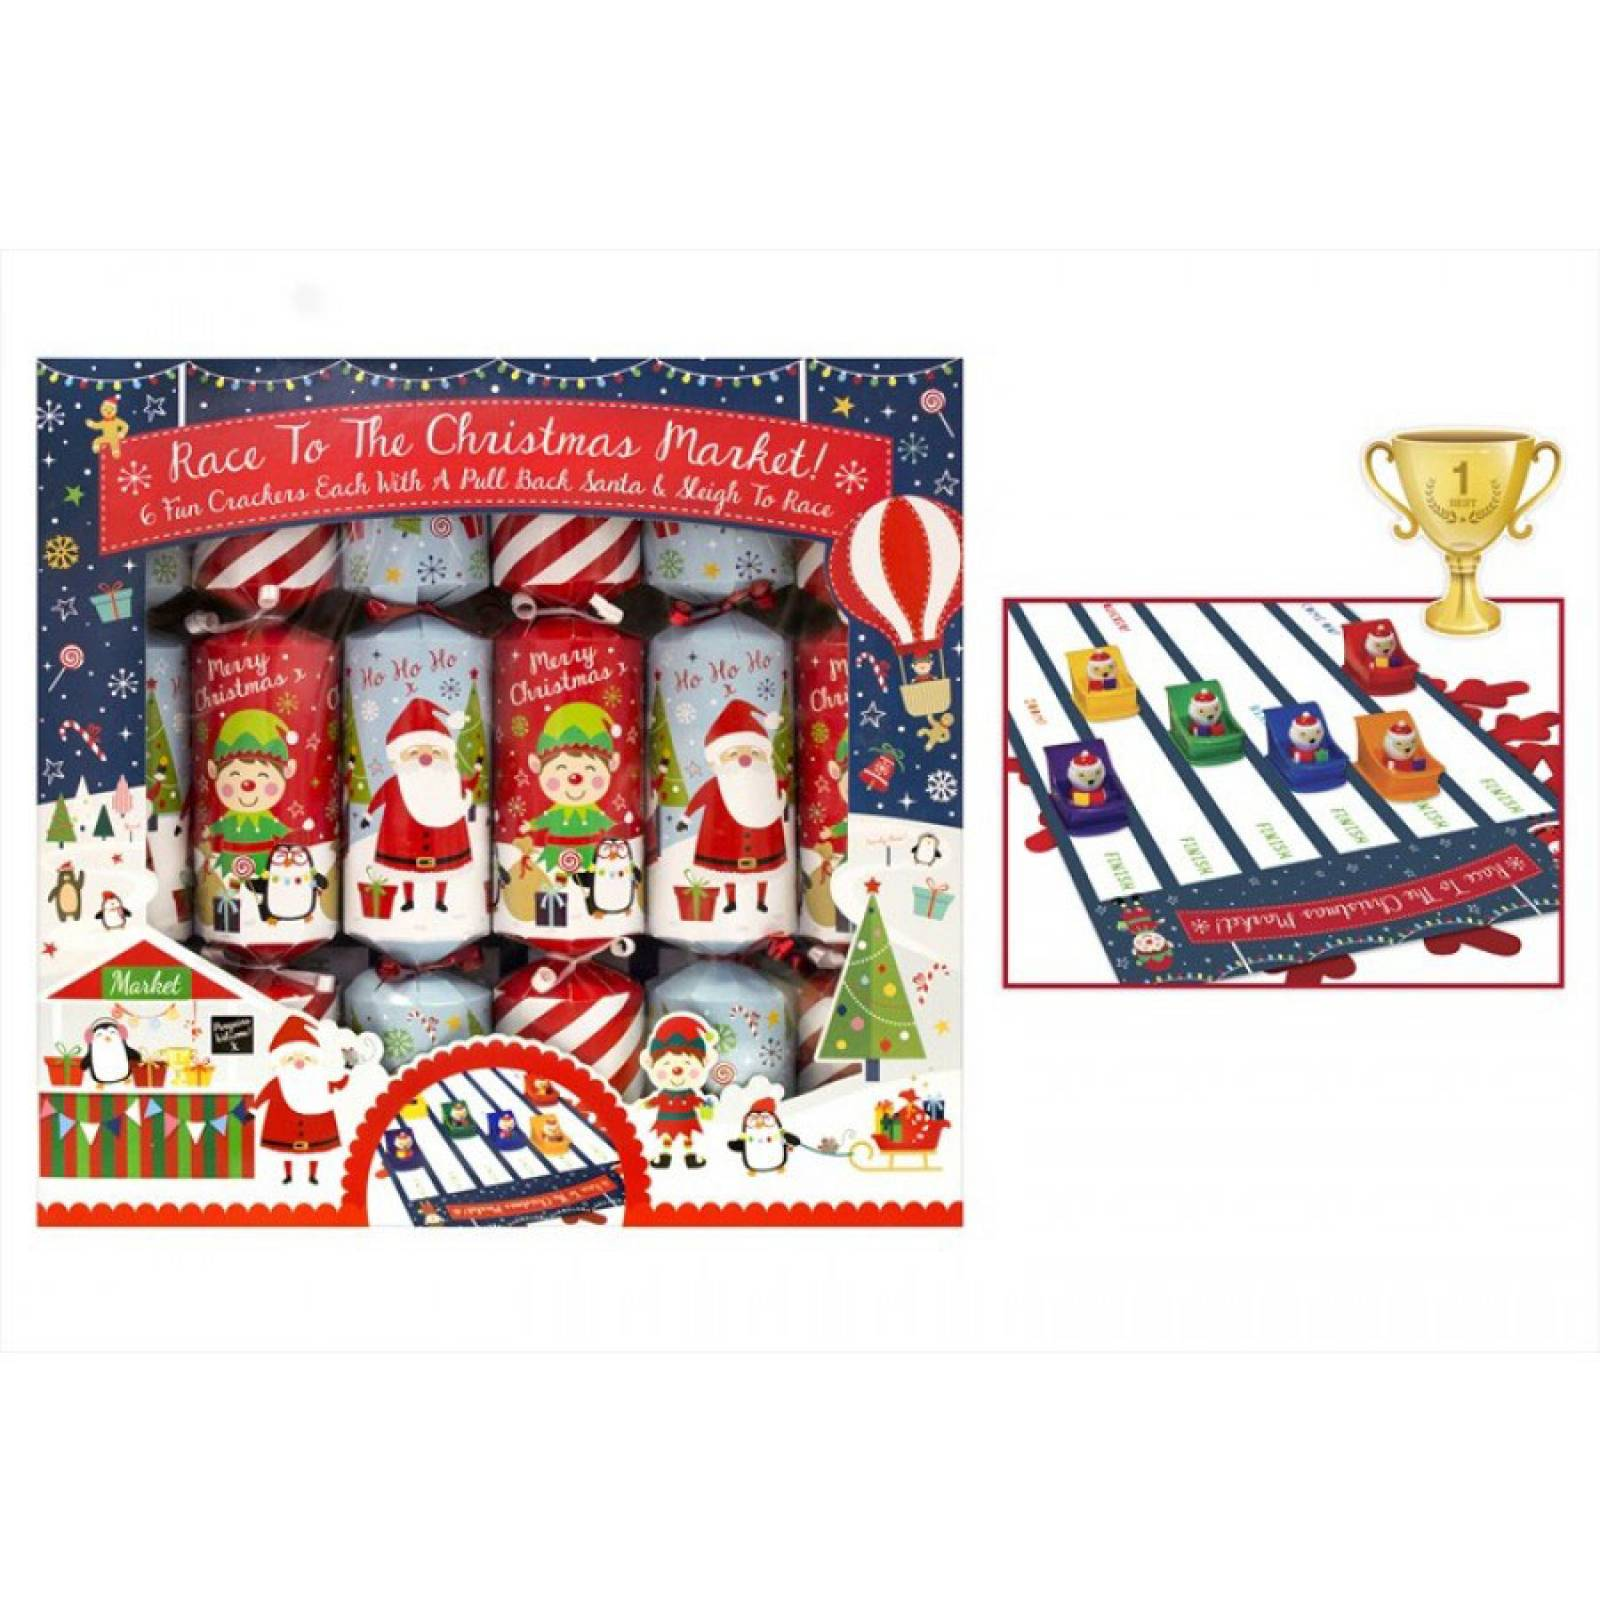 Race To The Christmas Market Crackers thumbnails